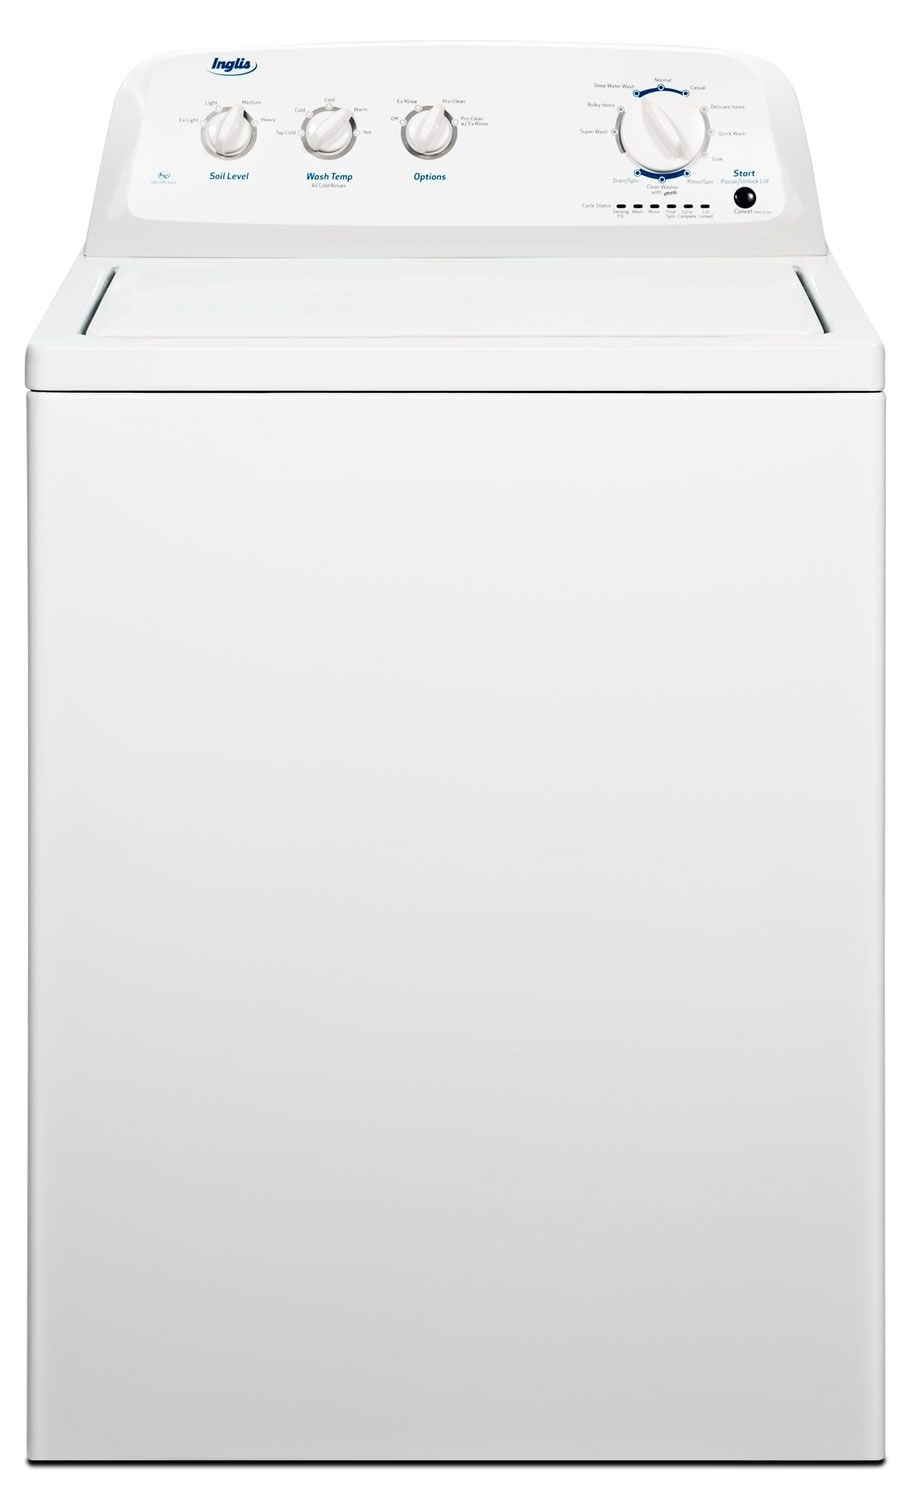 Washers and Dryers - Inglis 4.2 Cu. Ft. High-Efficiency Top-Load Washer - White